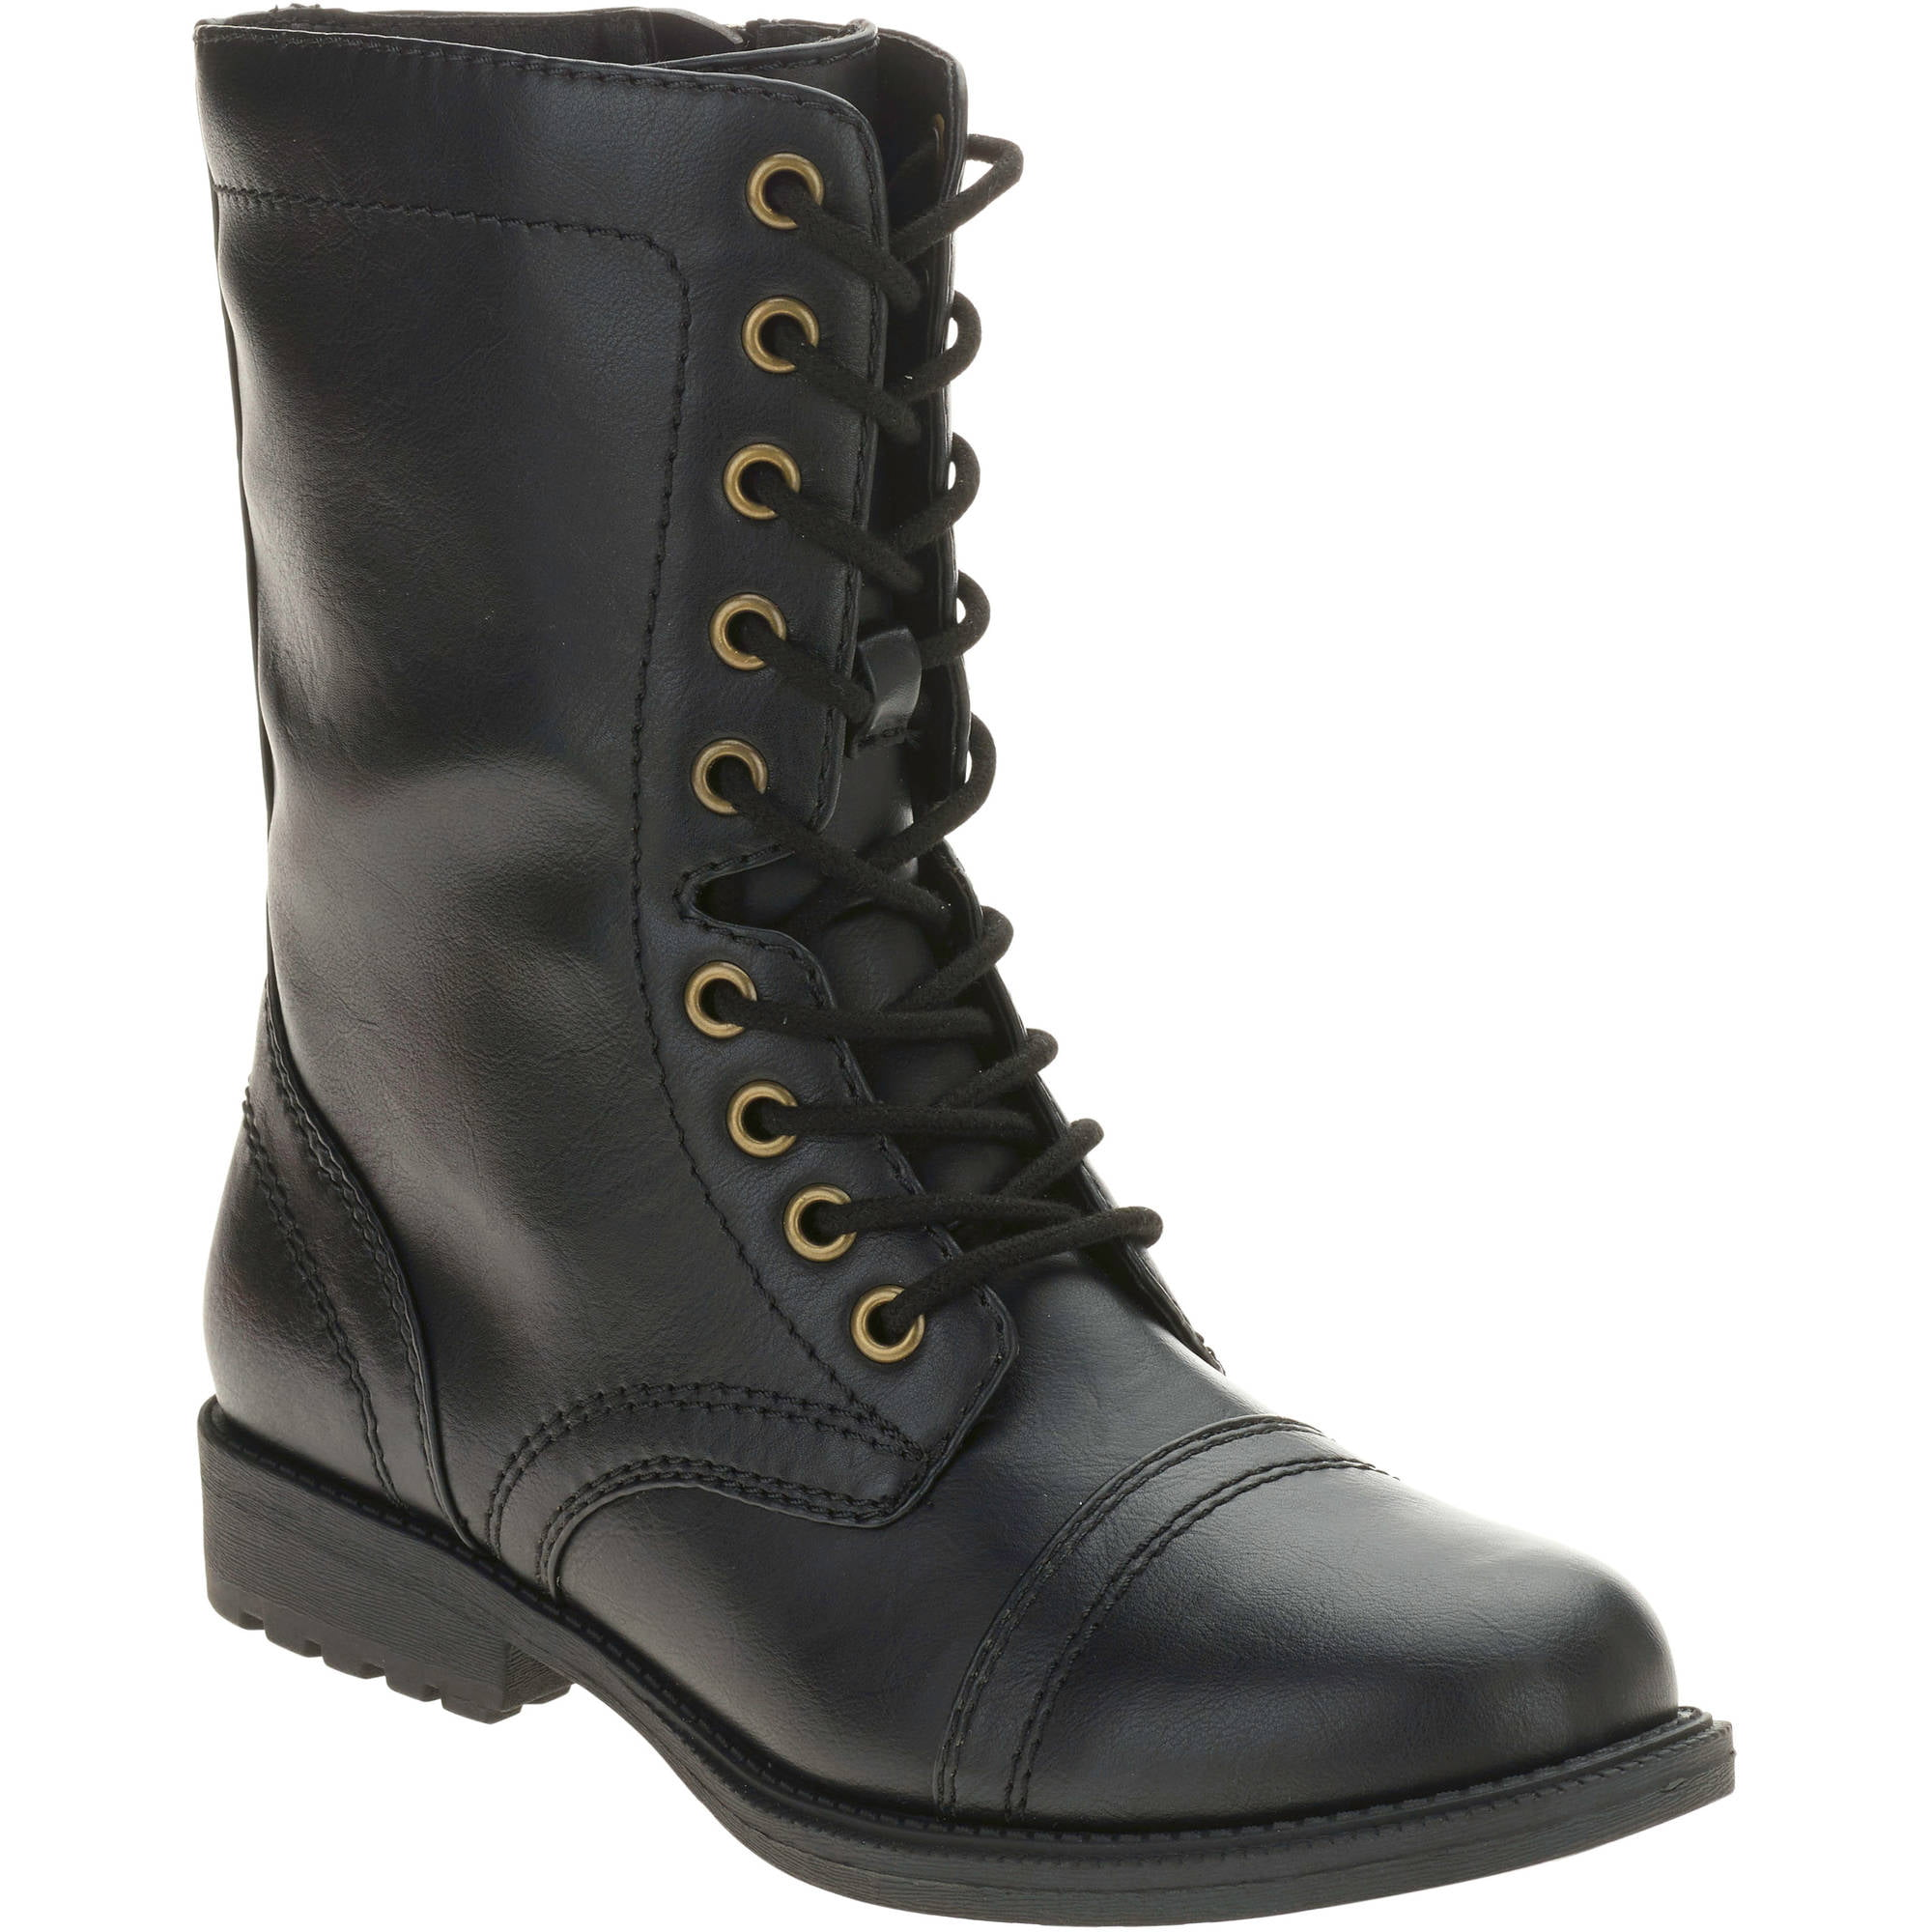 Amazing Combat Boots Womens 9 Black Leather Military Grunge By Moivintage